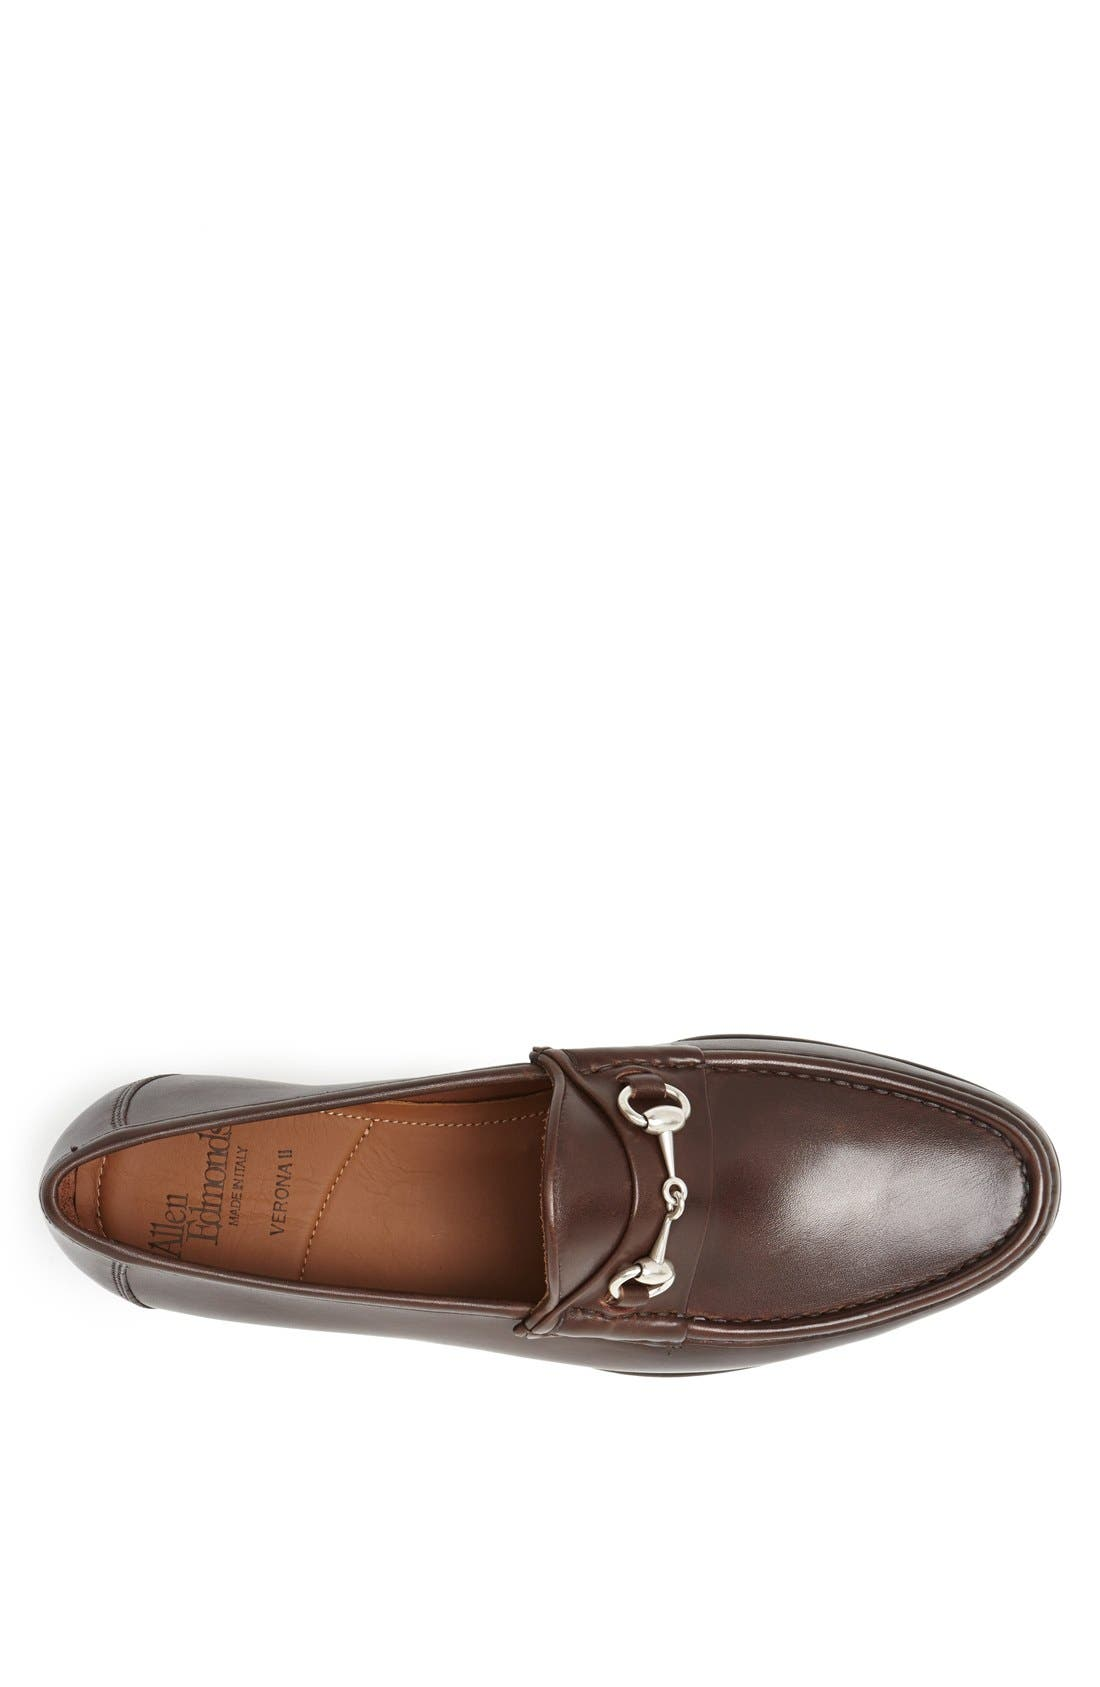 Verona II Bit Loafer,                             Alternate thumbnail 3, color,                             Brown/ Brown